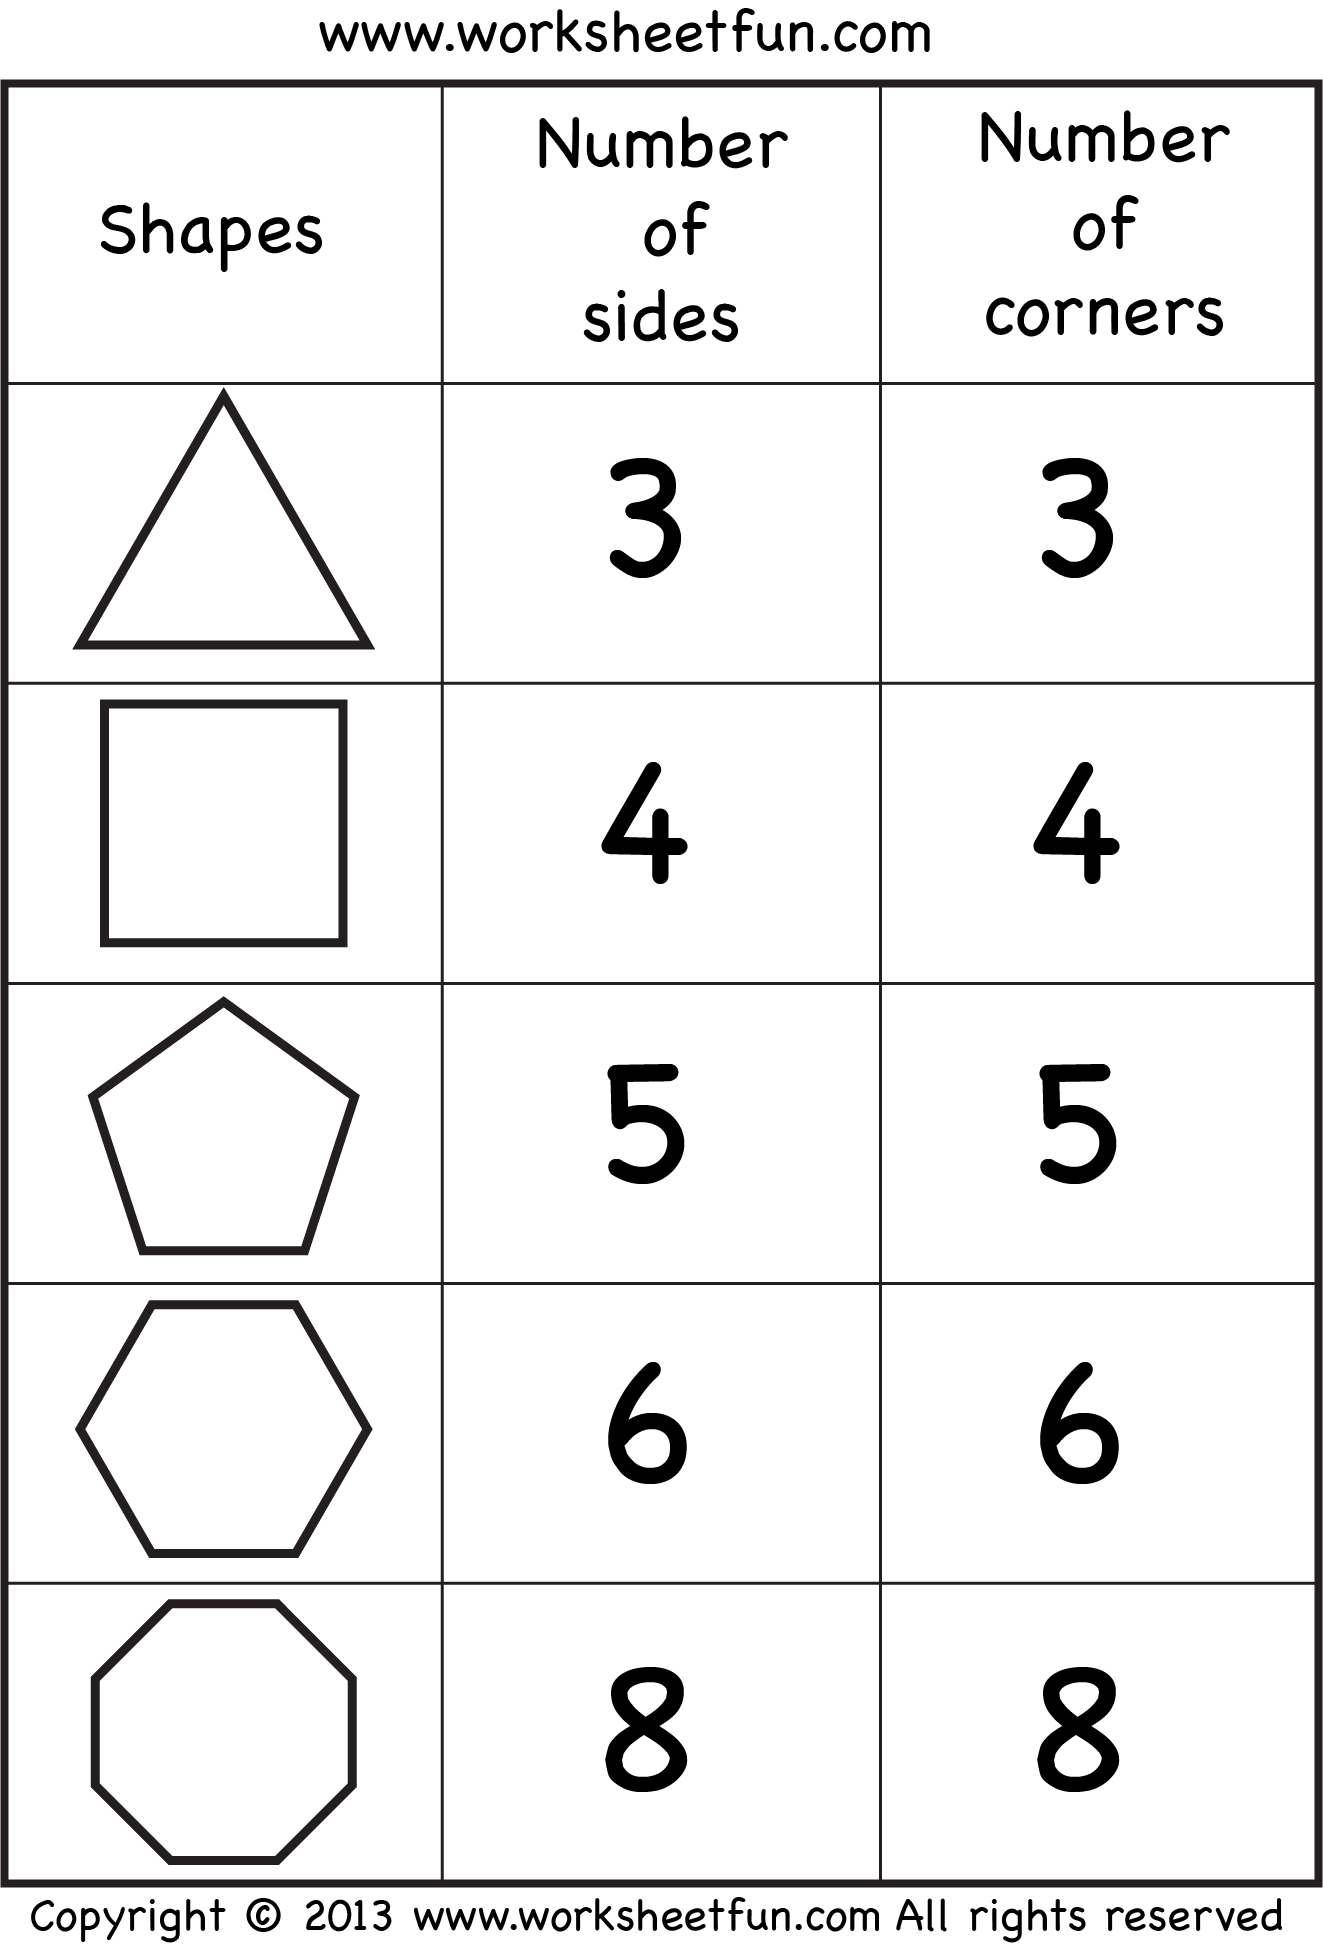 Shapes Number Of Sides Number Of Corners 2